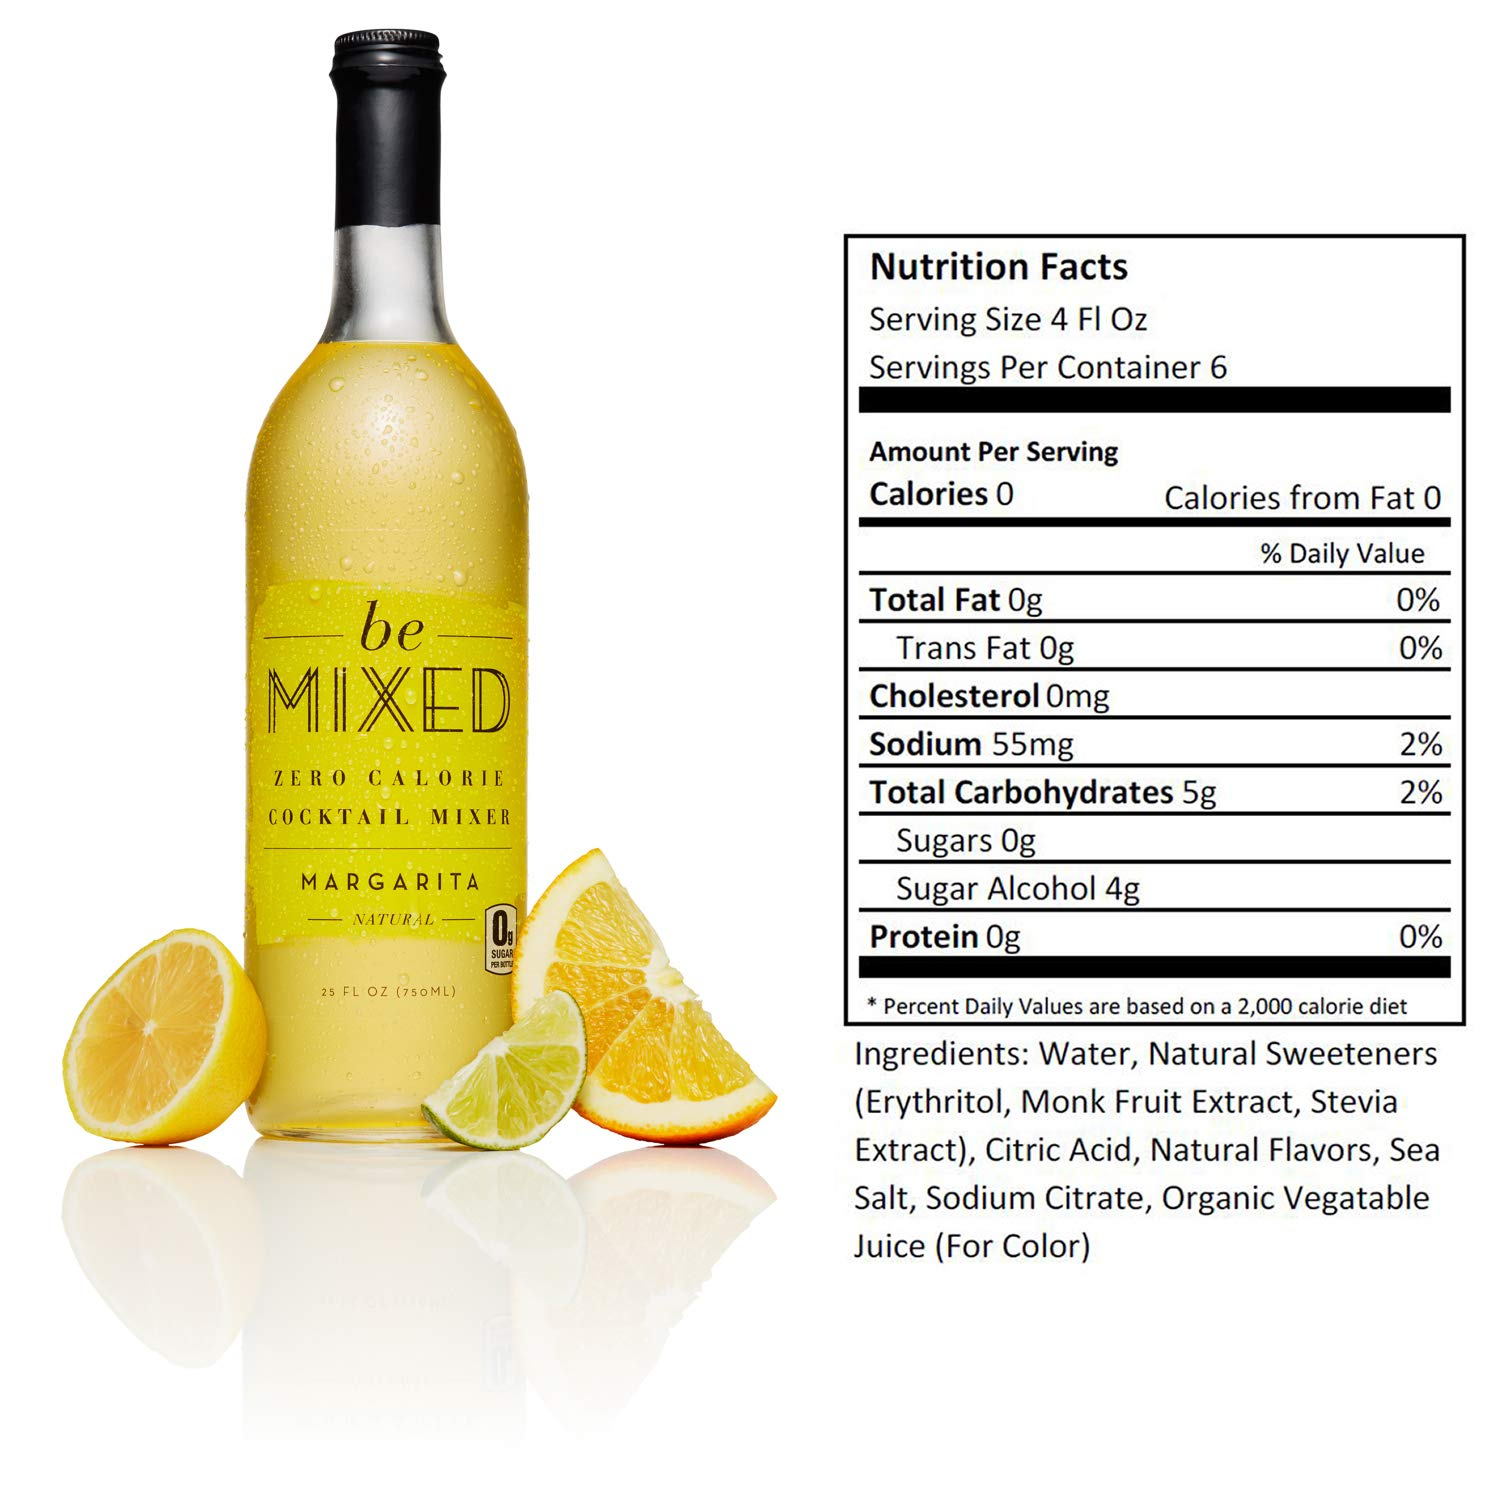 Zero Calorie Margarita Cocktail Mixer by Be Mixed | Low Carb, Keto Friendly, Sugar Free and Gluten Free Drink Mix | 25 ounce bottle, 3 pack by Be Mixed (Image #1)